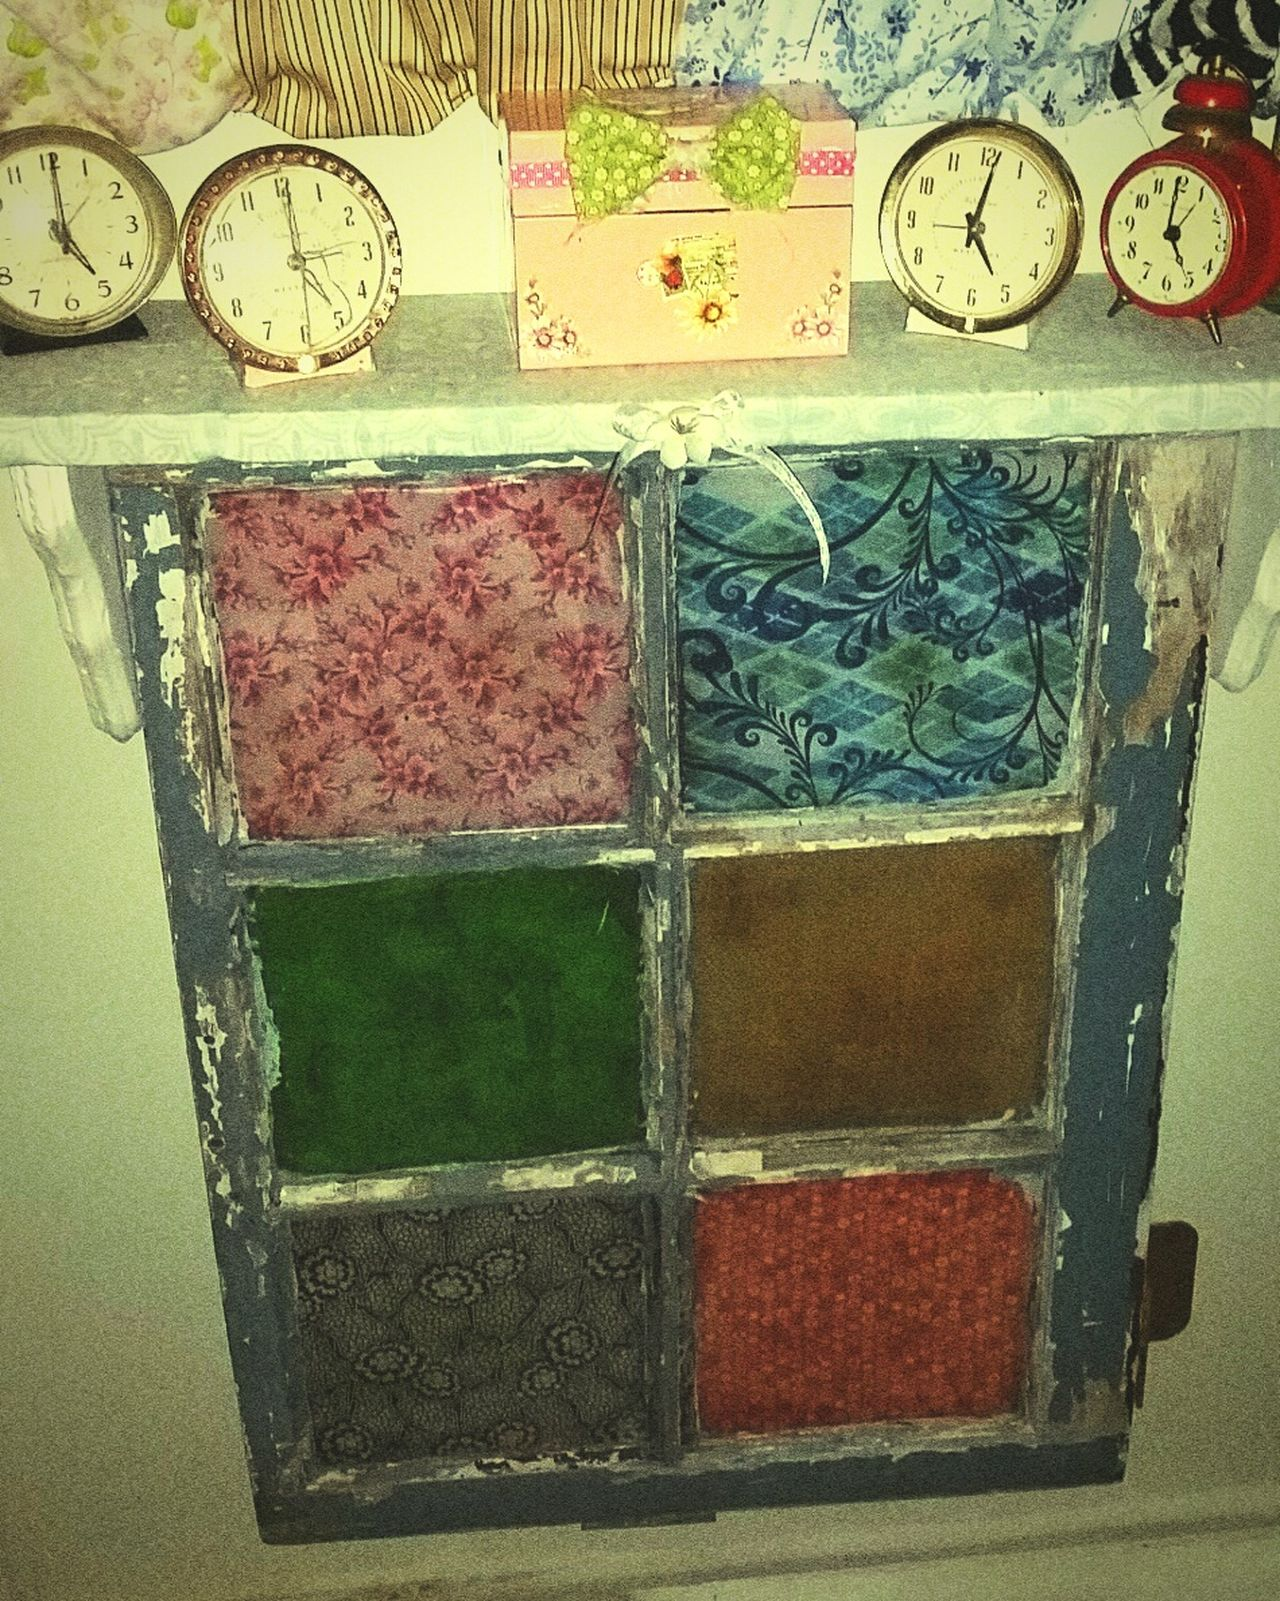 Vintage Window Vintagestyles Vintage Clocks Repurposed Windows My Quirky Style